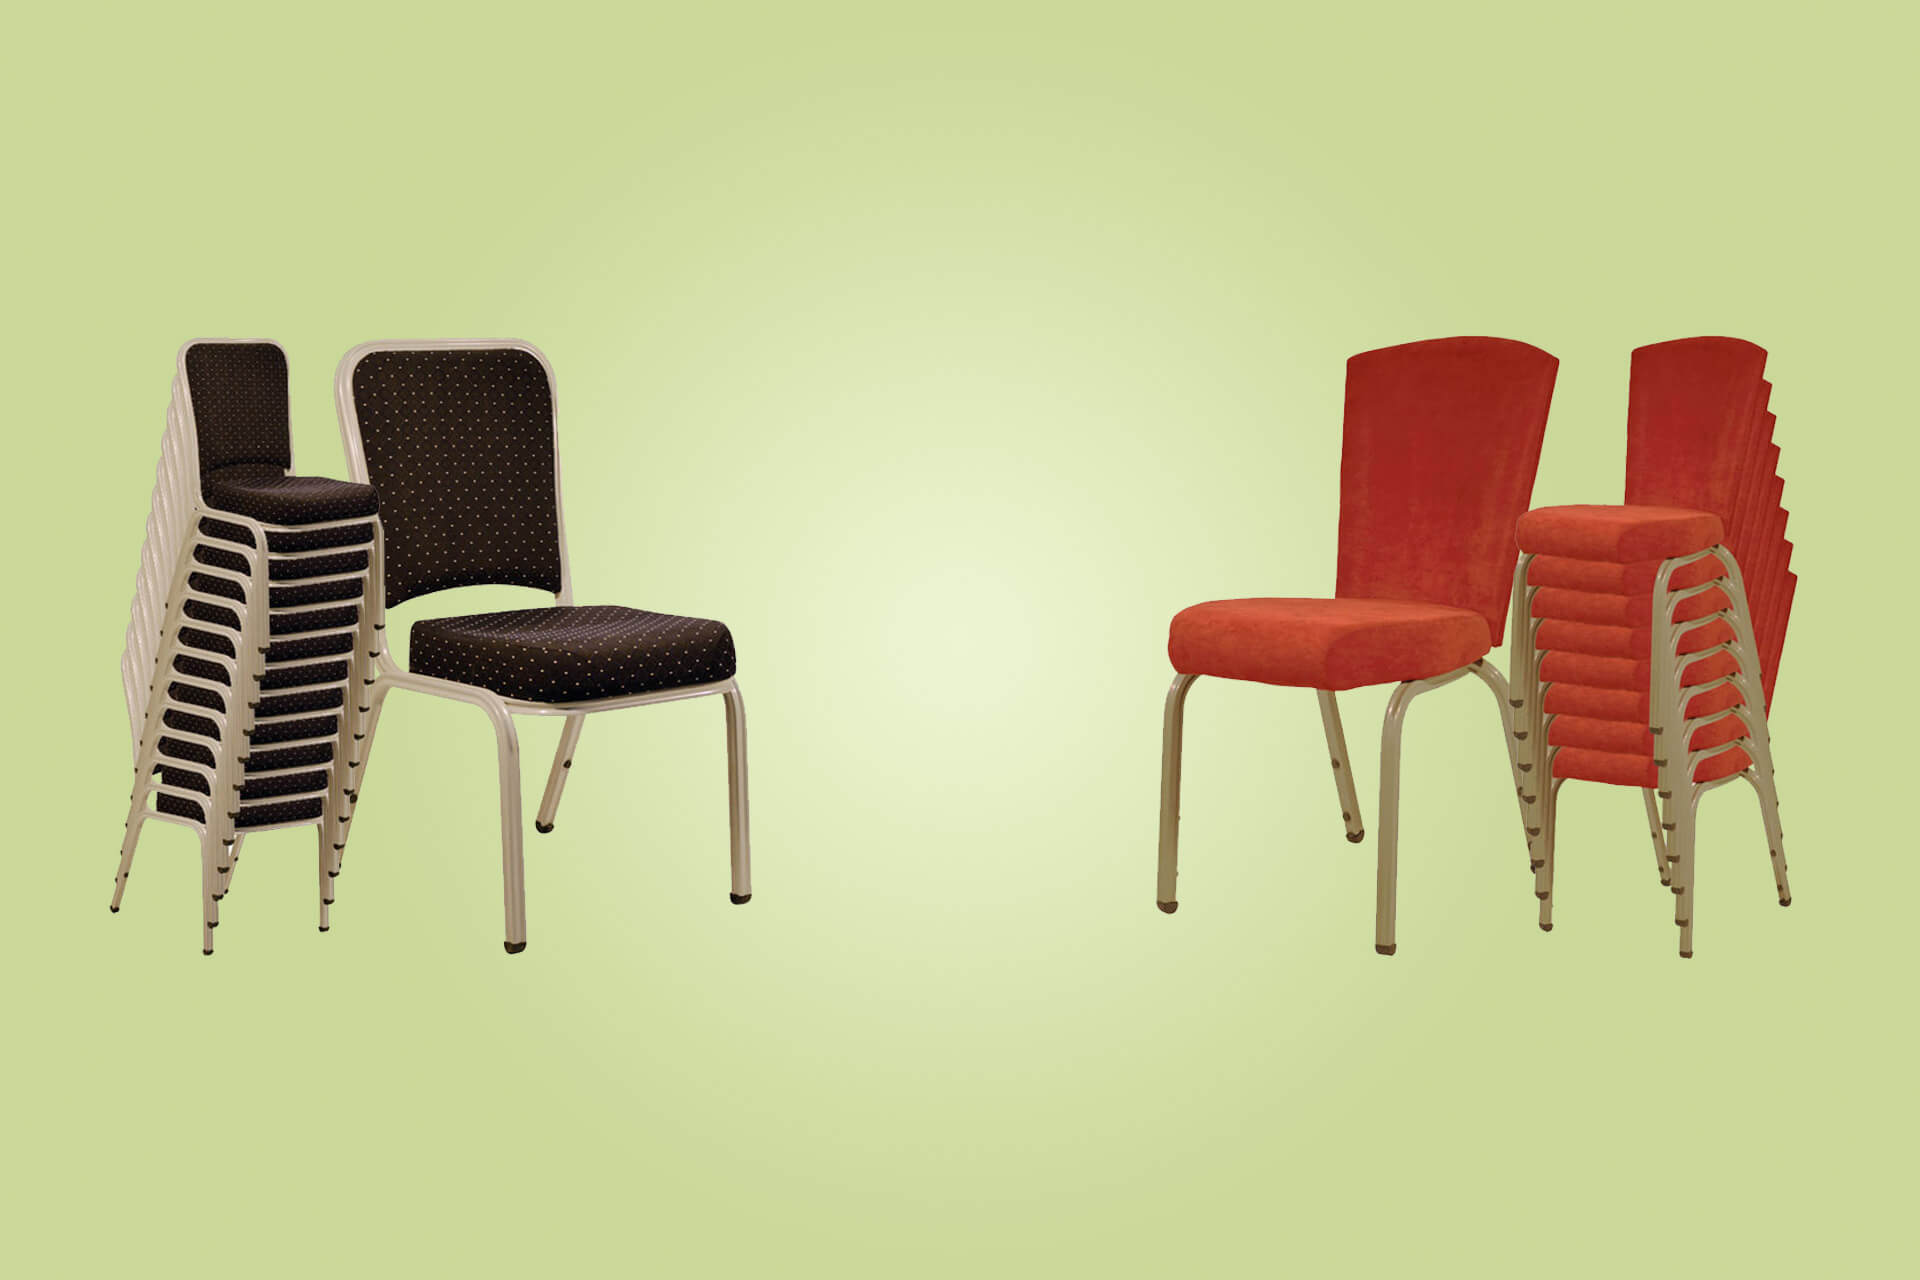 Amazing Chairium Turkish Chair Table Manufacturer For Cafes Pdpeps Interior Chair Design Pdpepsorg